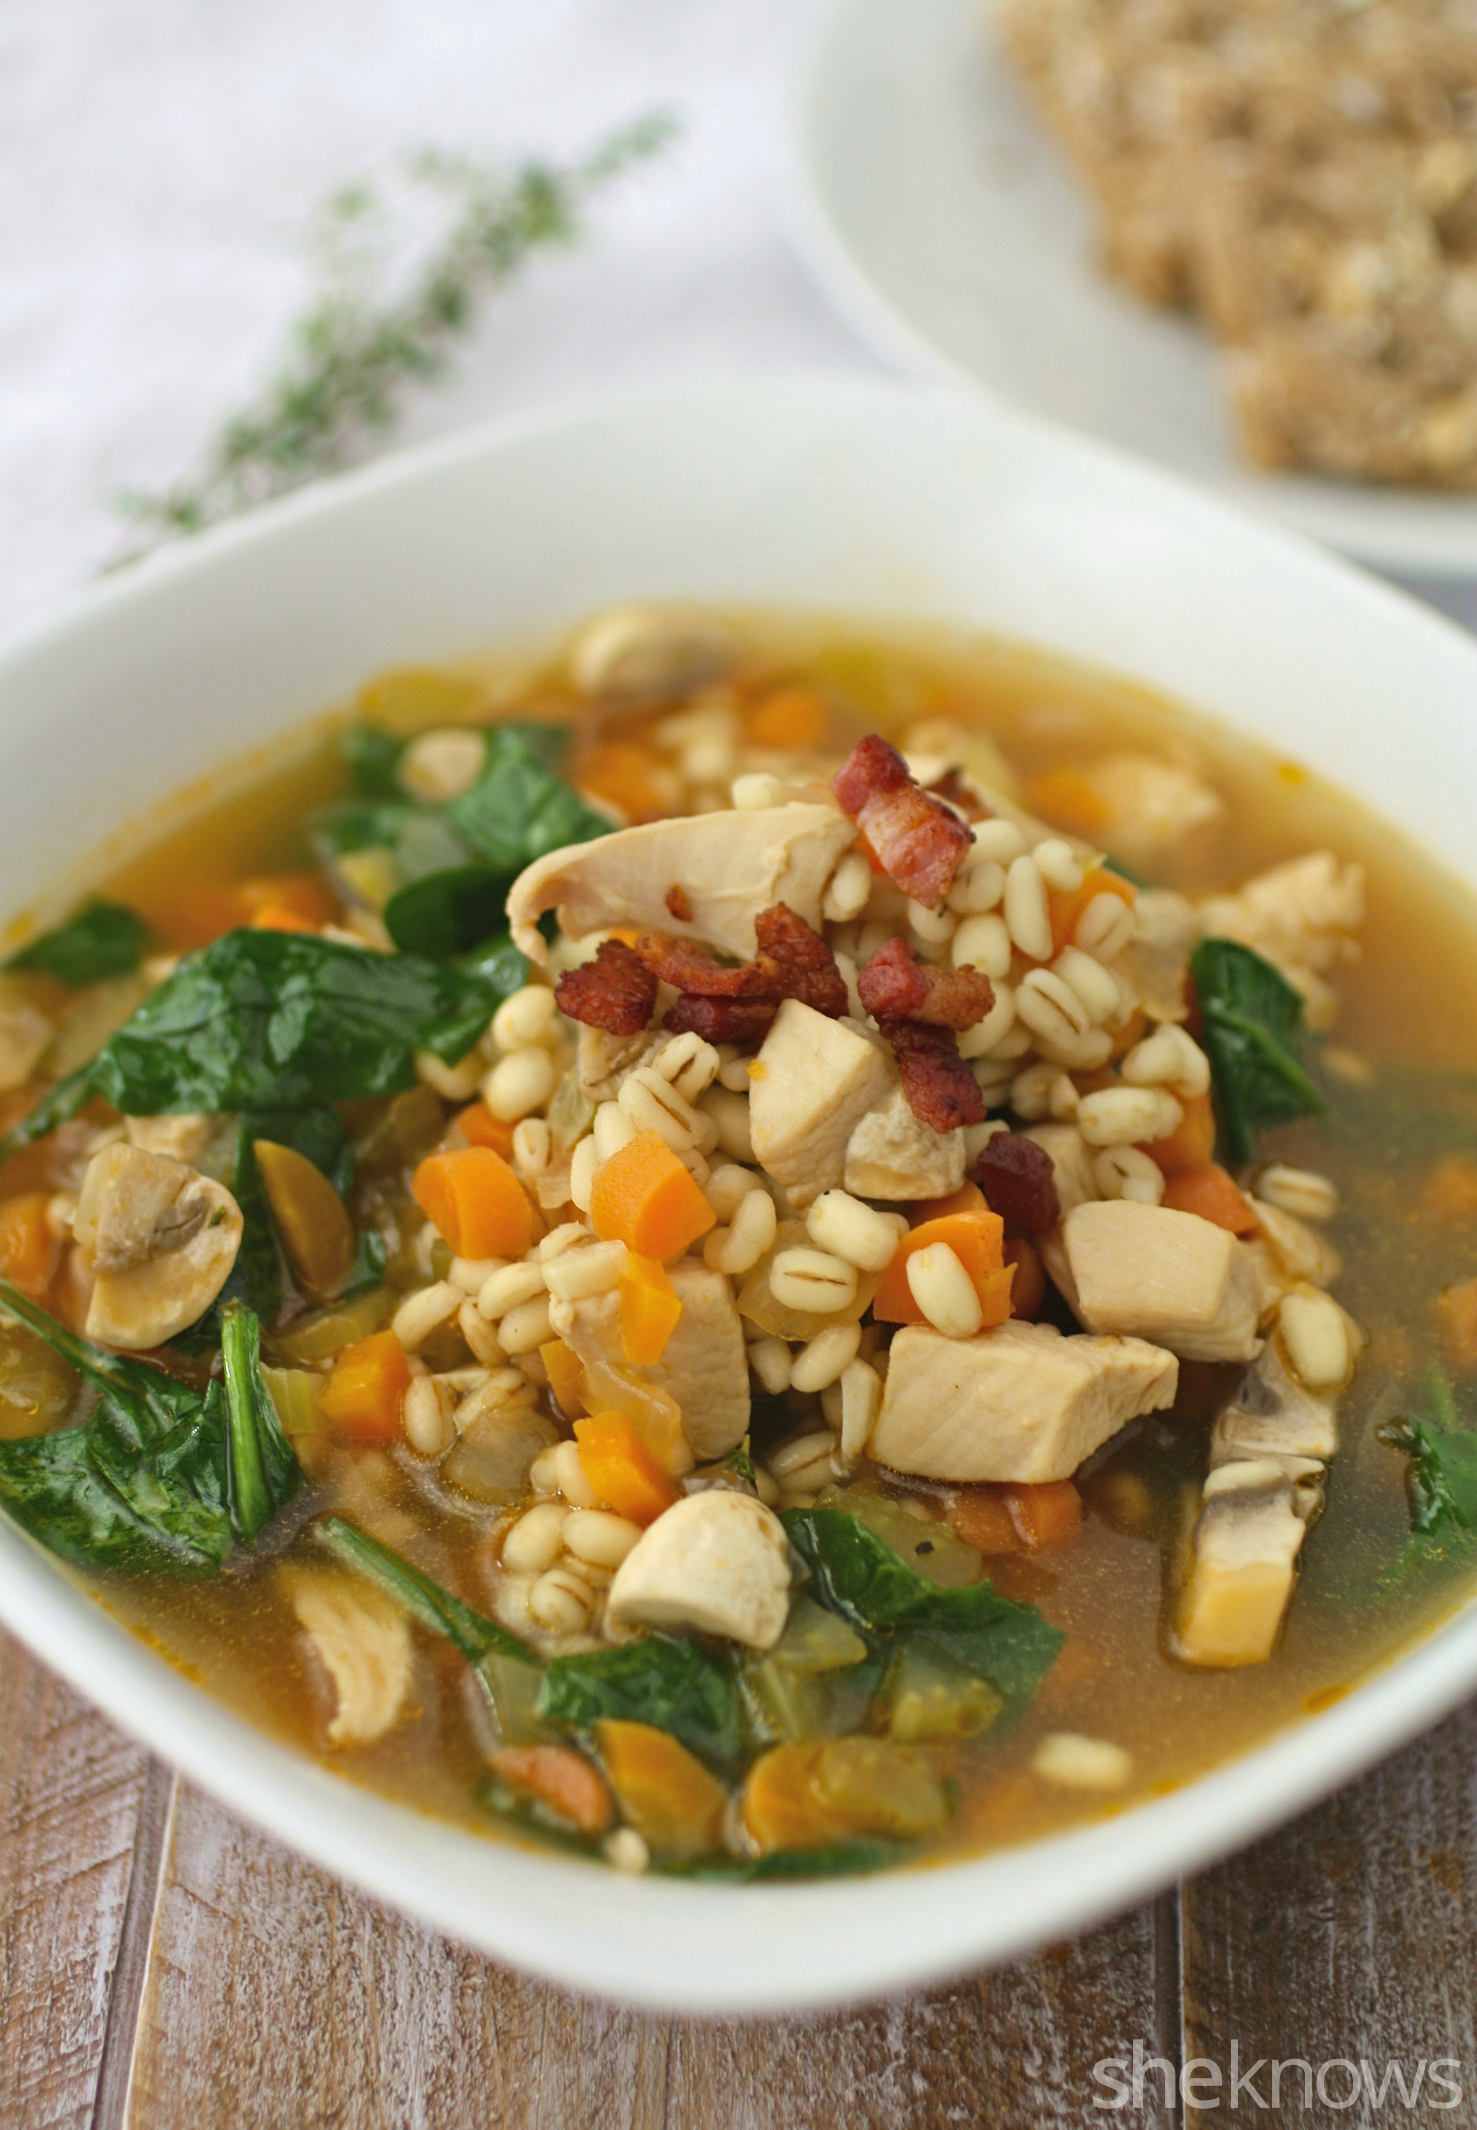 Serve this one-pot chicken and barely soup with spinach and pancetta for dinner